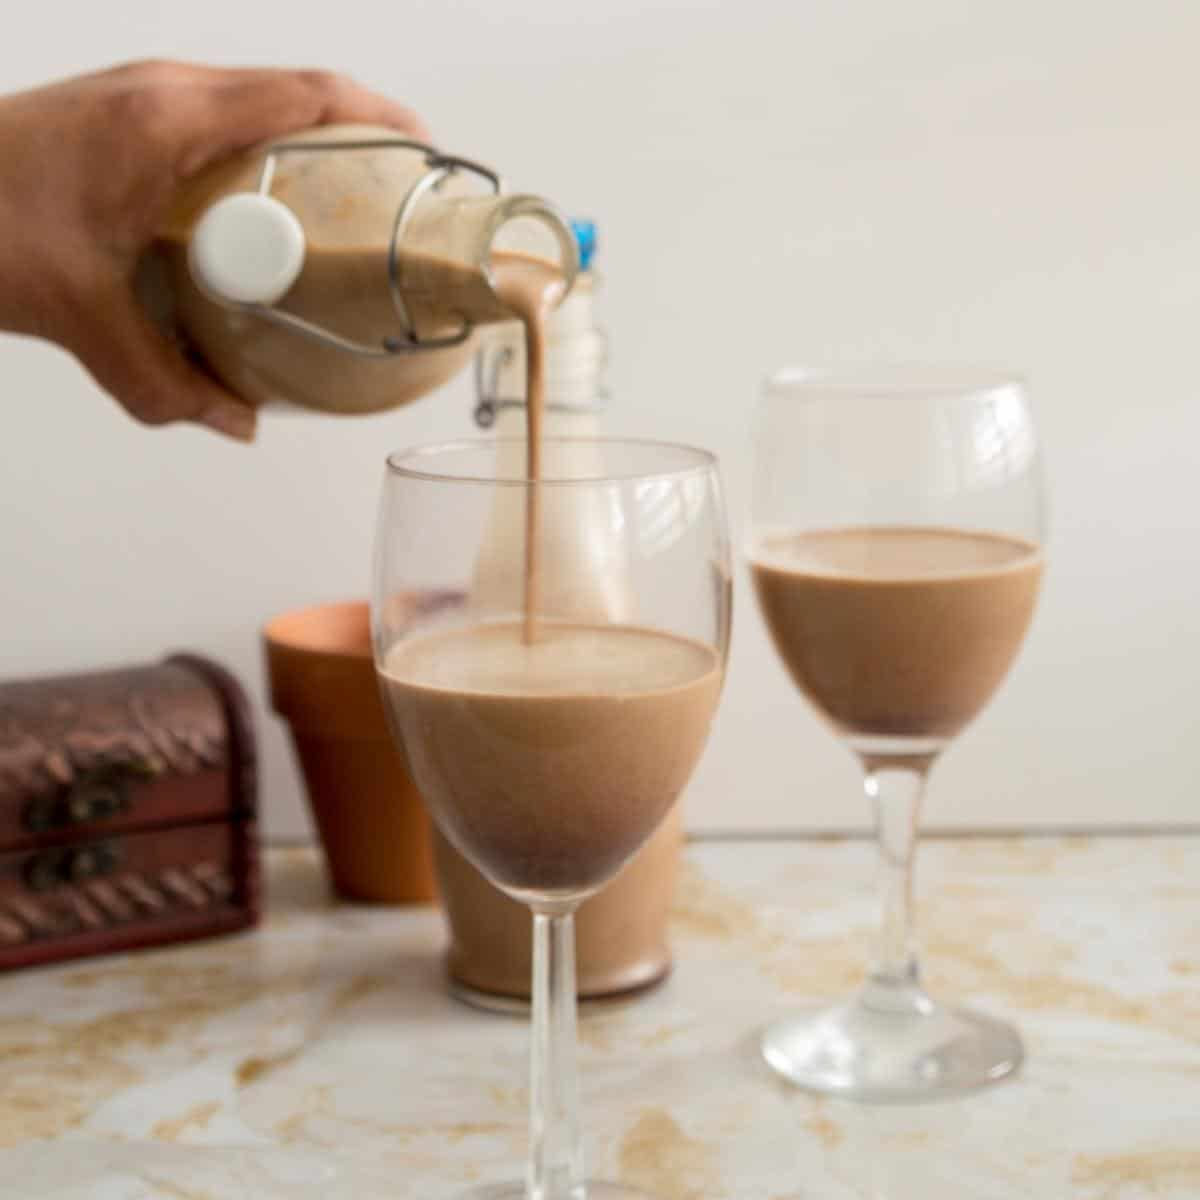 Pouring Irish cream in a wine glass